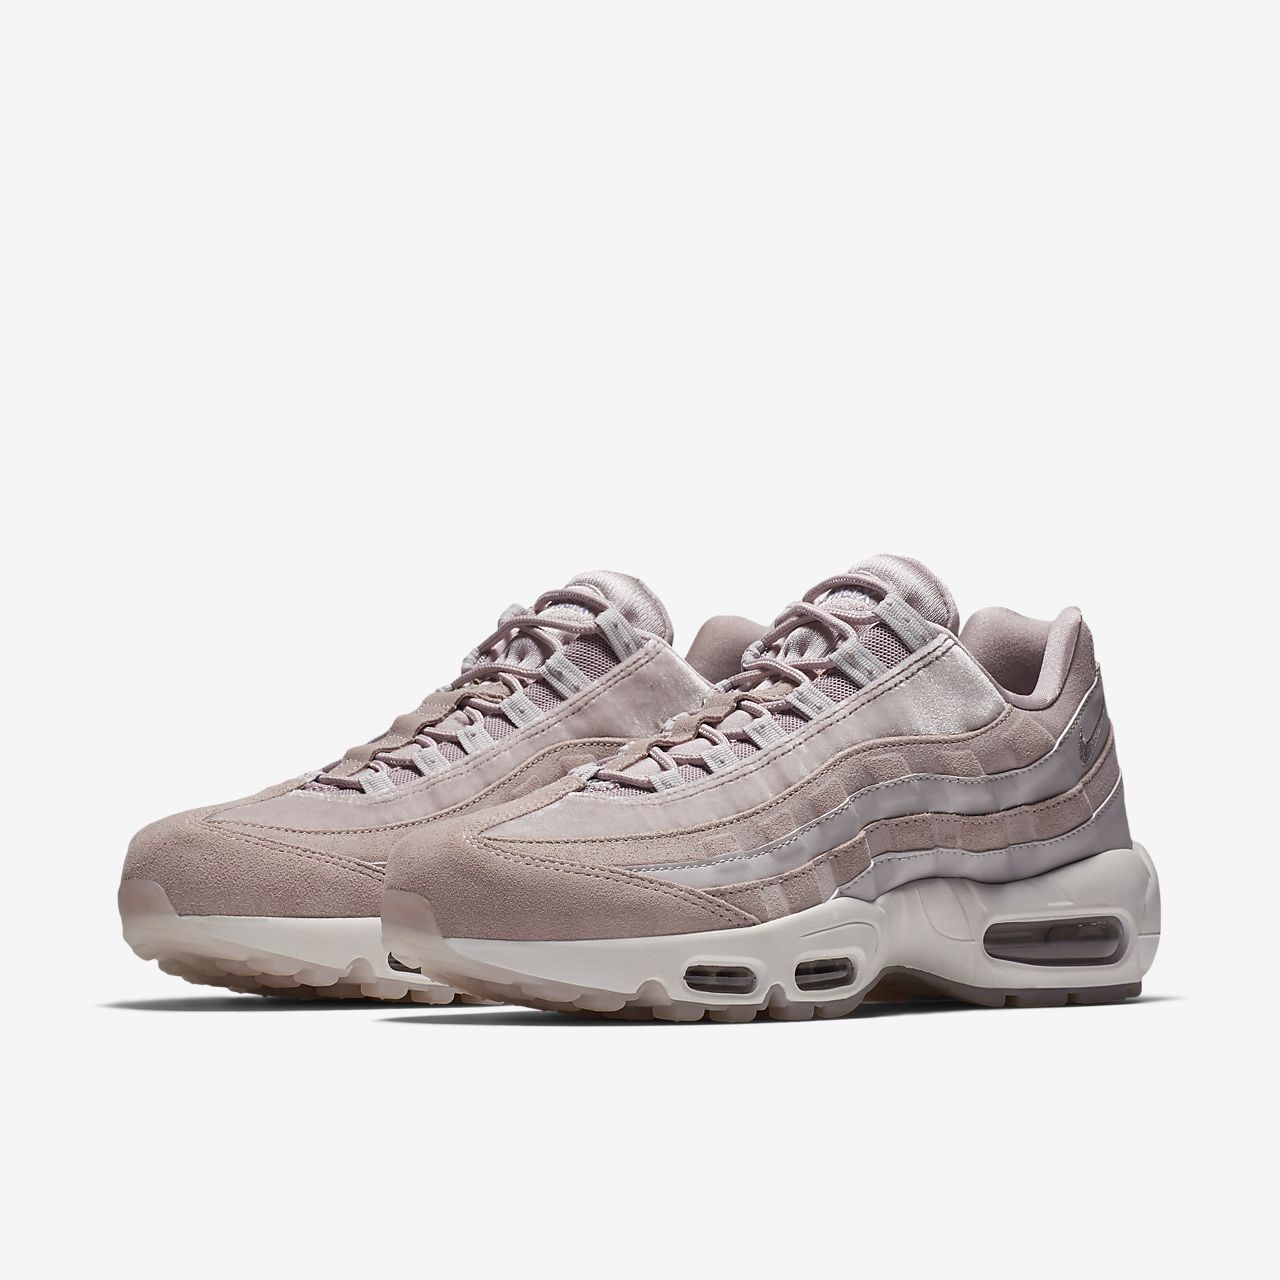 nike air max 95 lx women 39 s shoe. Black Bedroom Furniture Sets. Home Design Ideas